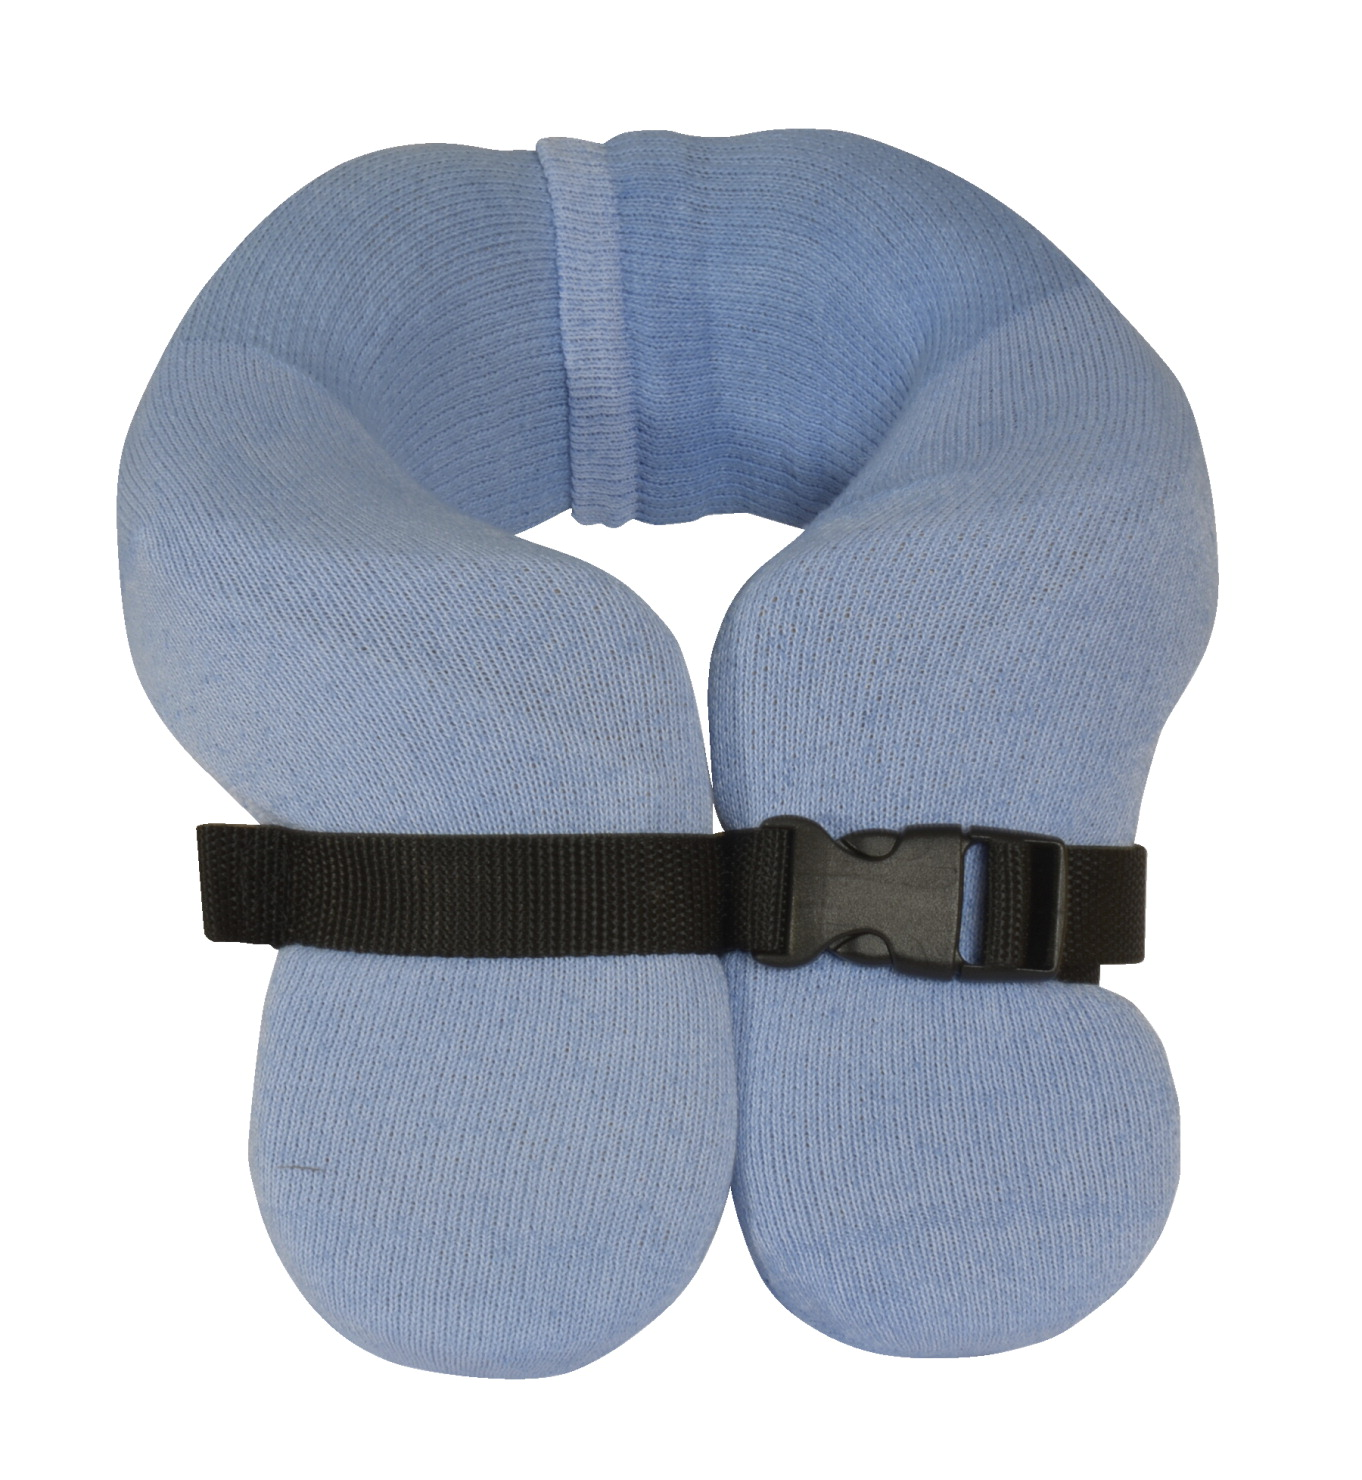 Danmar Hensinger Head Support with High Back Unmounted, Blue, Large